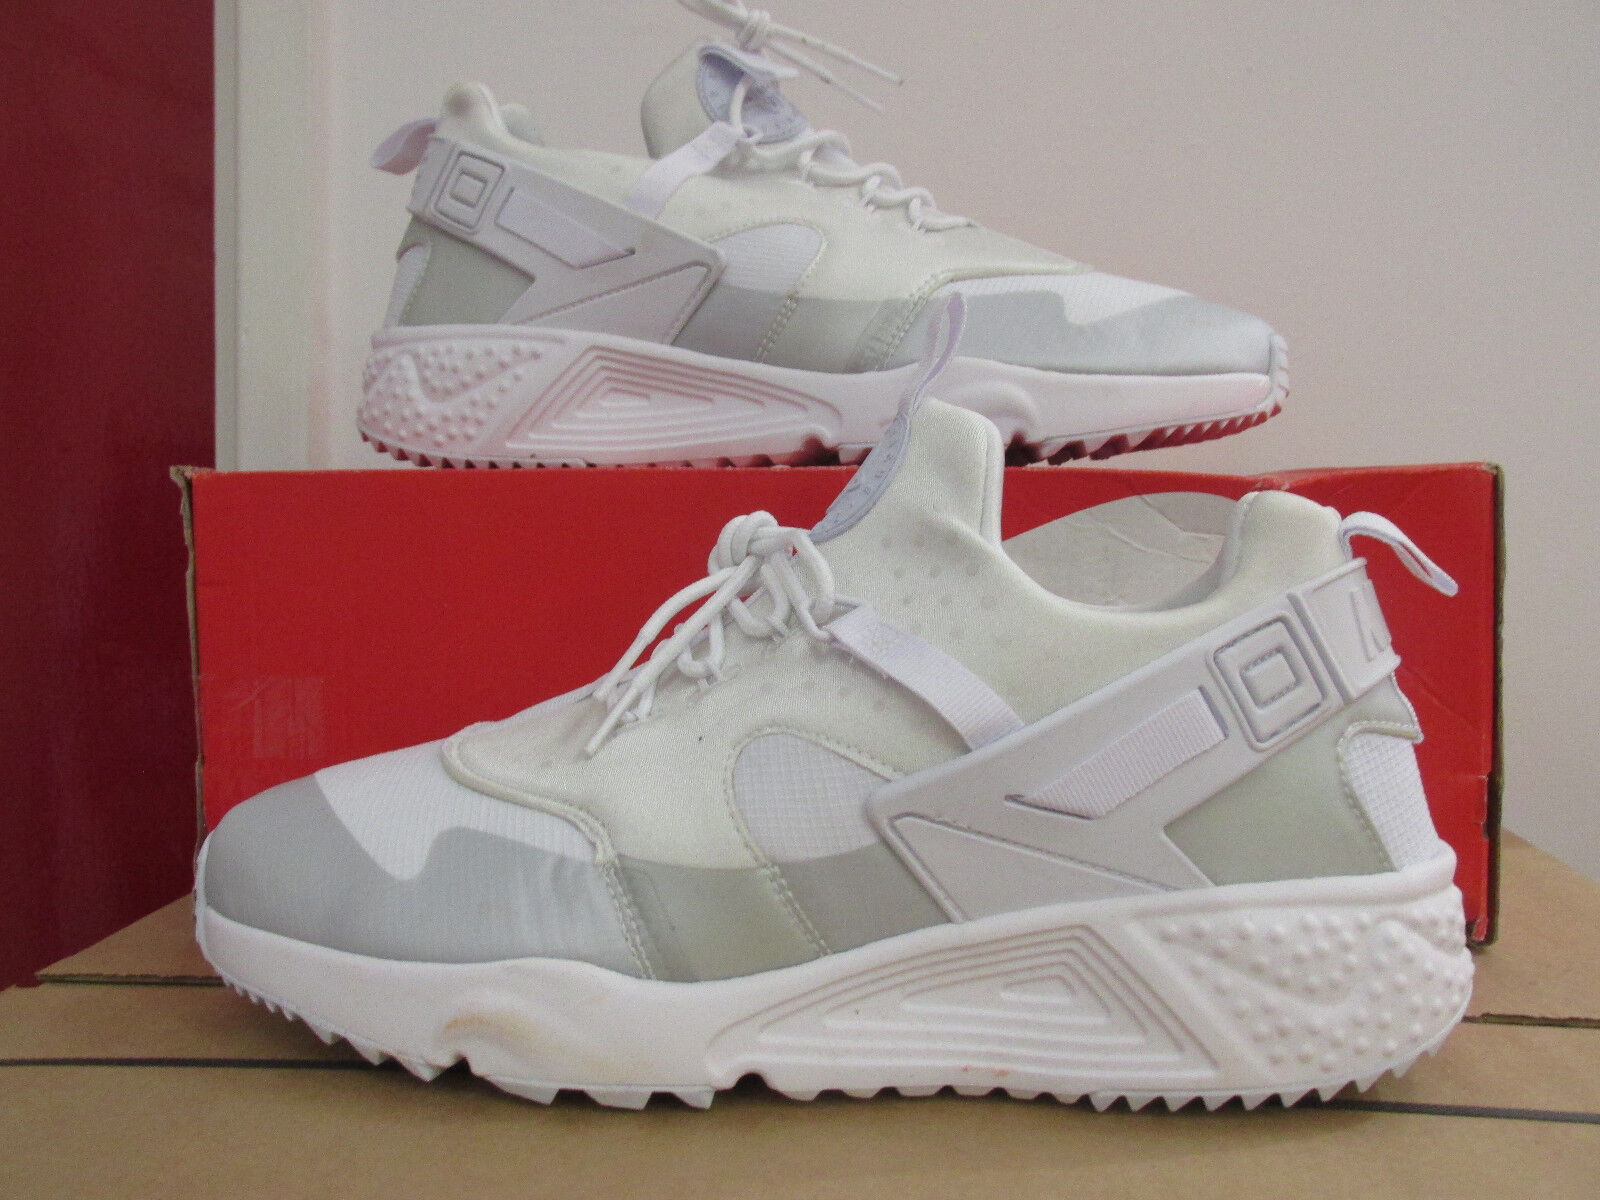 nike air 100 huarache utility mens trainers 806807 100 air sneakers shoes CLEARANCE cd28f0